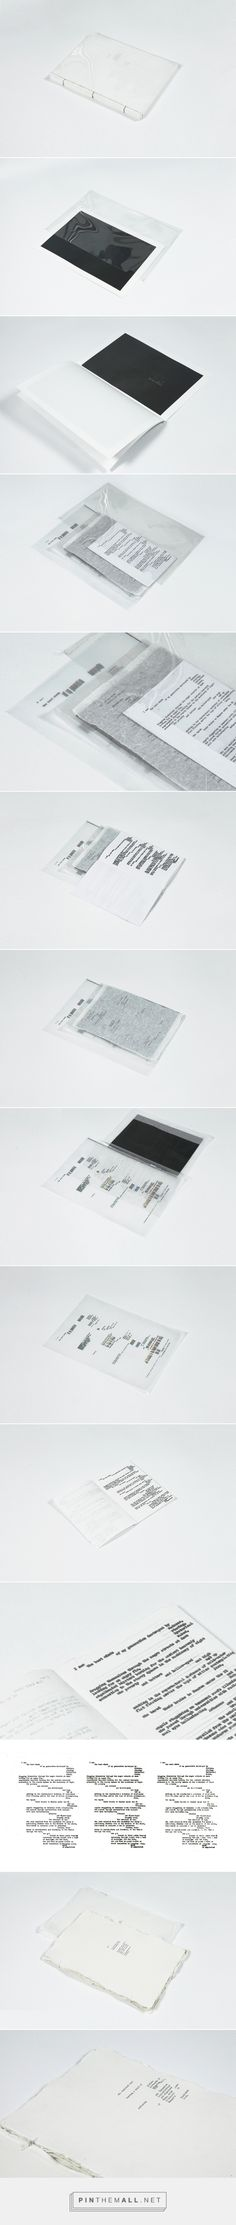 Adventure of experimental typography / Shimin Chen Poster Layout, Print Layout, Book Layout, Gfx Design, Layout Design, Editorial Layout, Editorial Design, Book Design, Cover Design